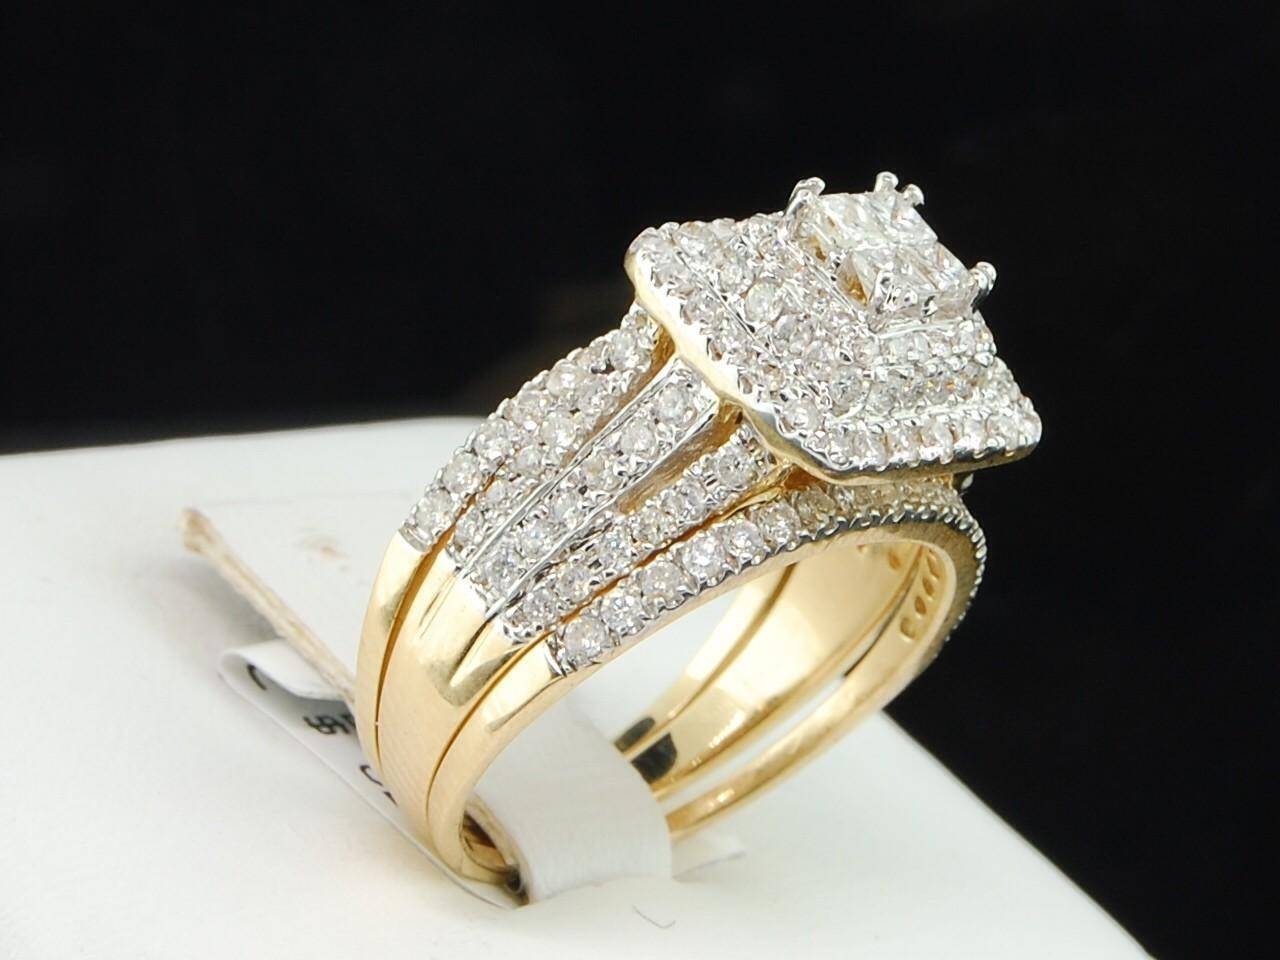 engagement rings for women cheap walmart 3 ifec ci throughout walmart wedding bands for women - Wedding Rings For Women Cheap